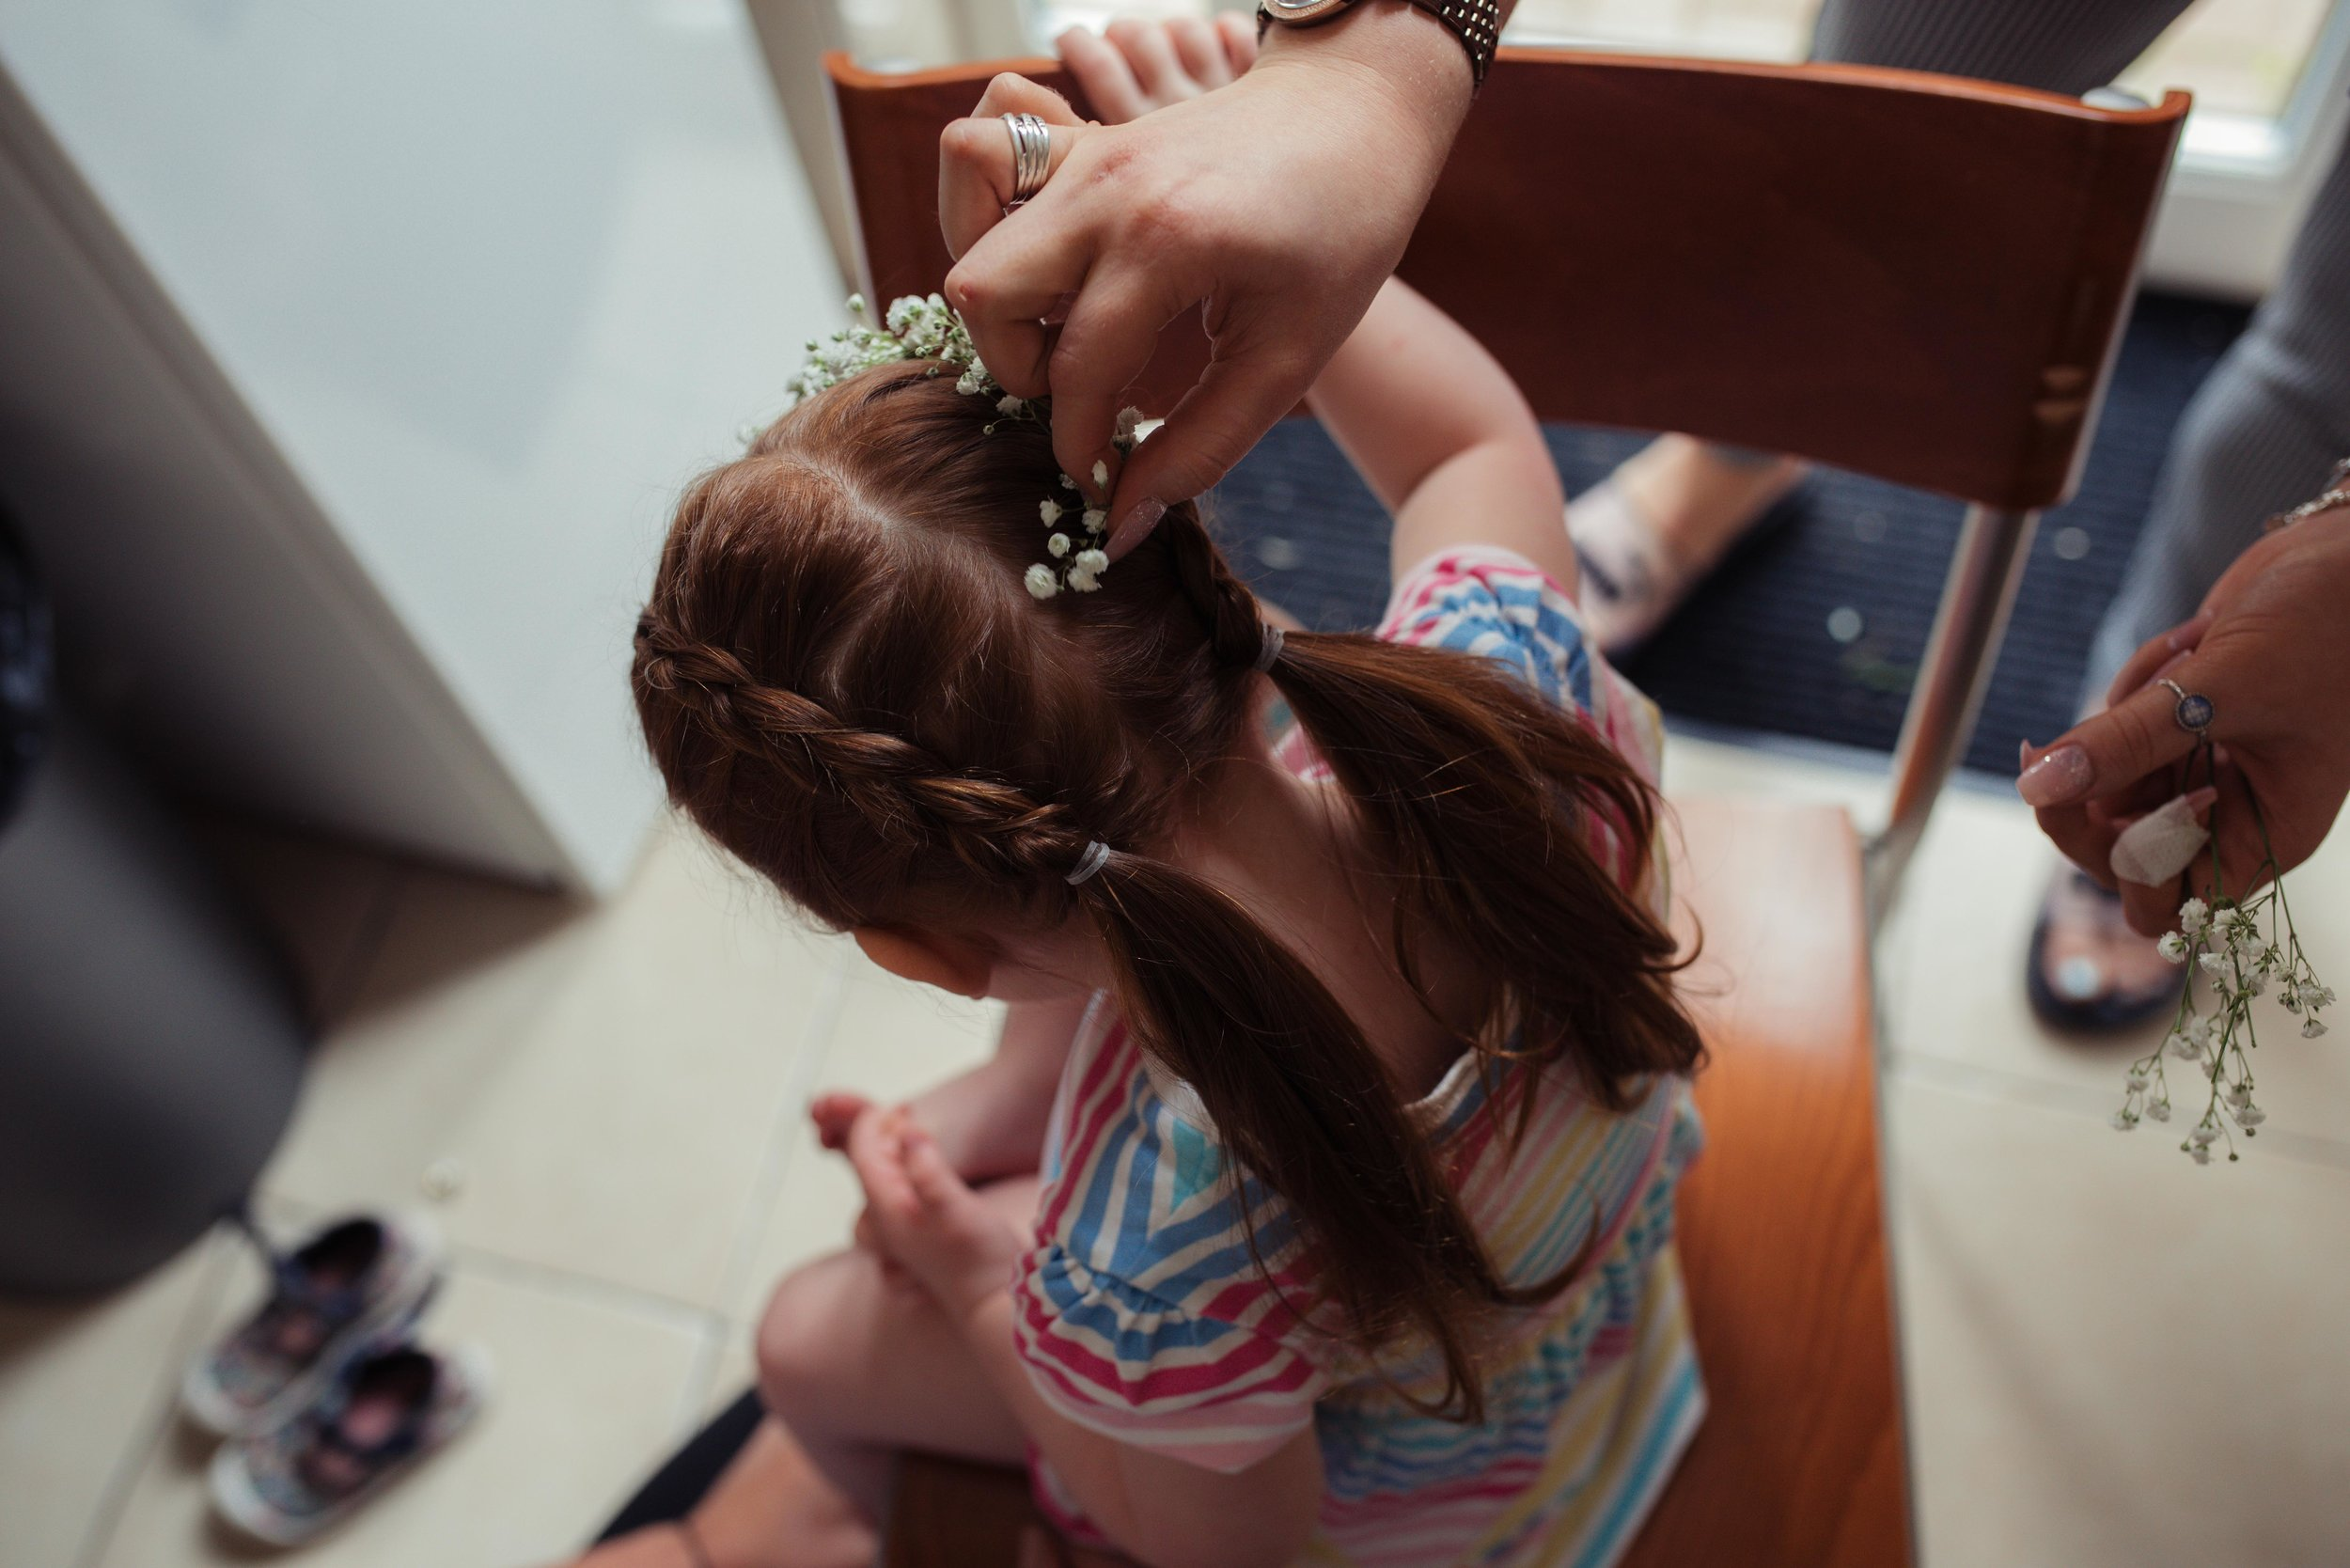 Flower girl has flowers put in her hair while she sits in the kitchen